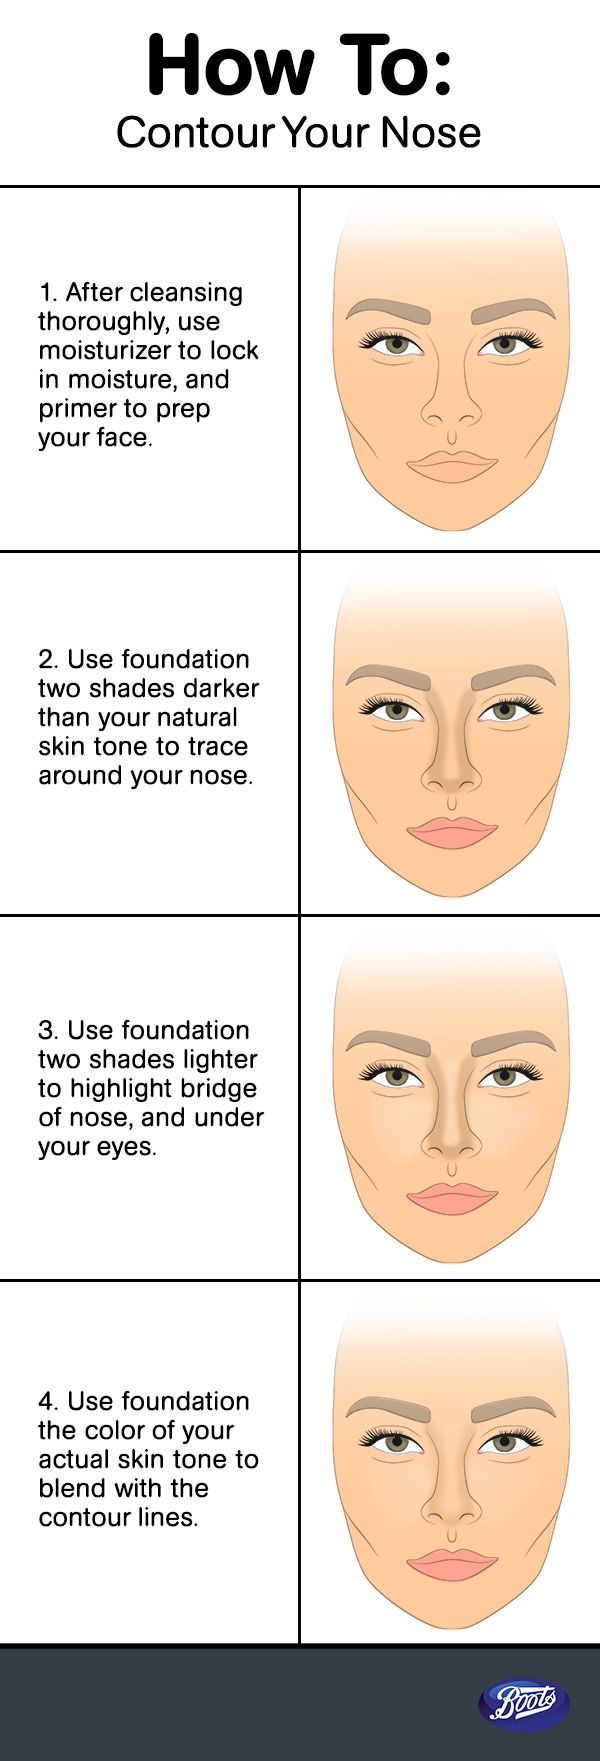 How to Get Thinner Nose with Makeup- Step by Step Tutorial (13)